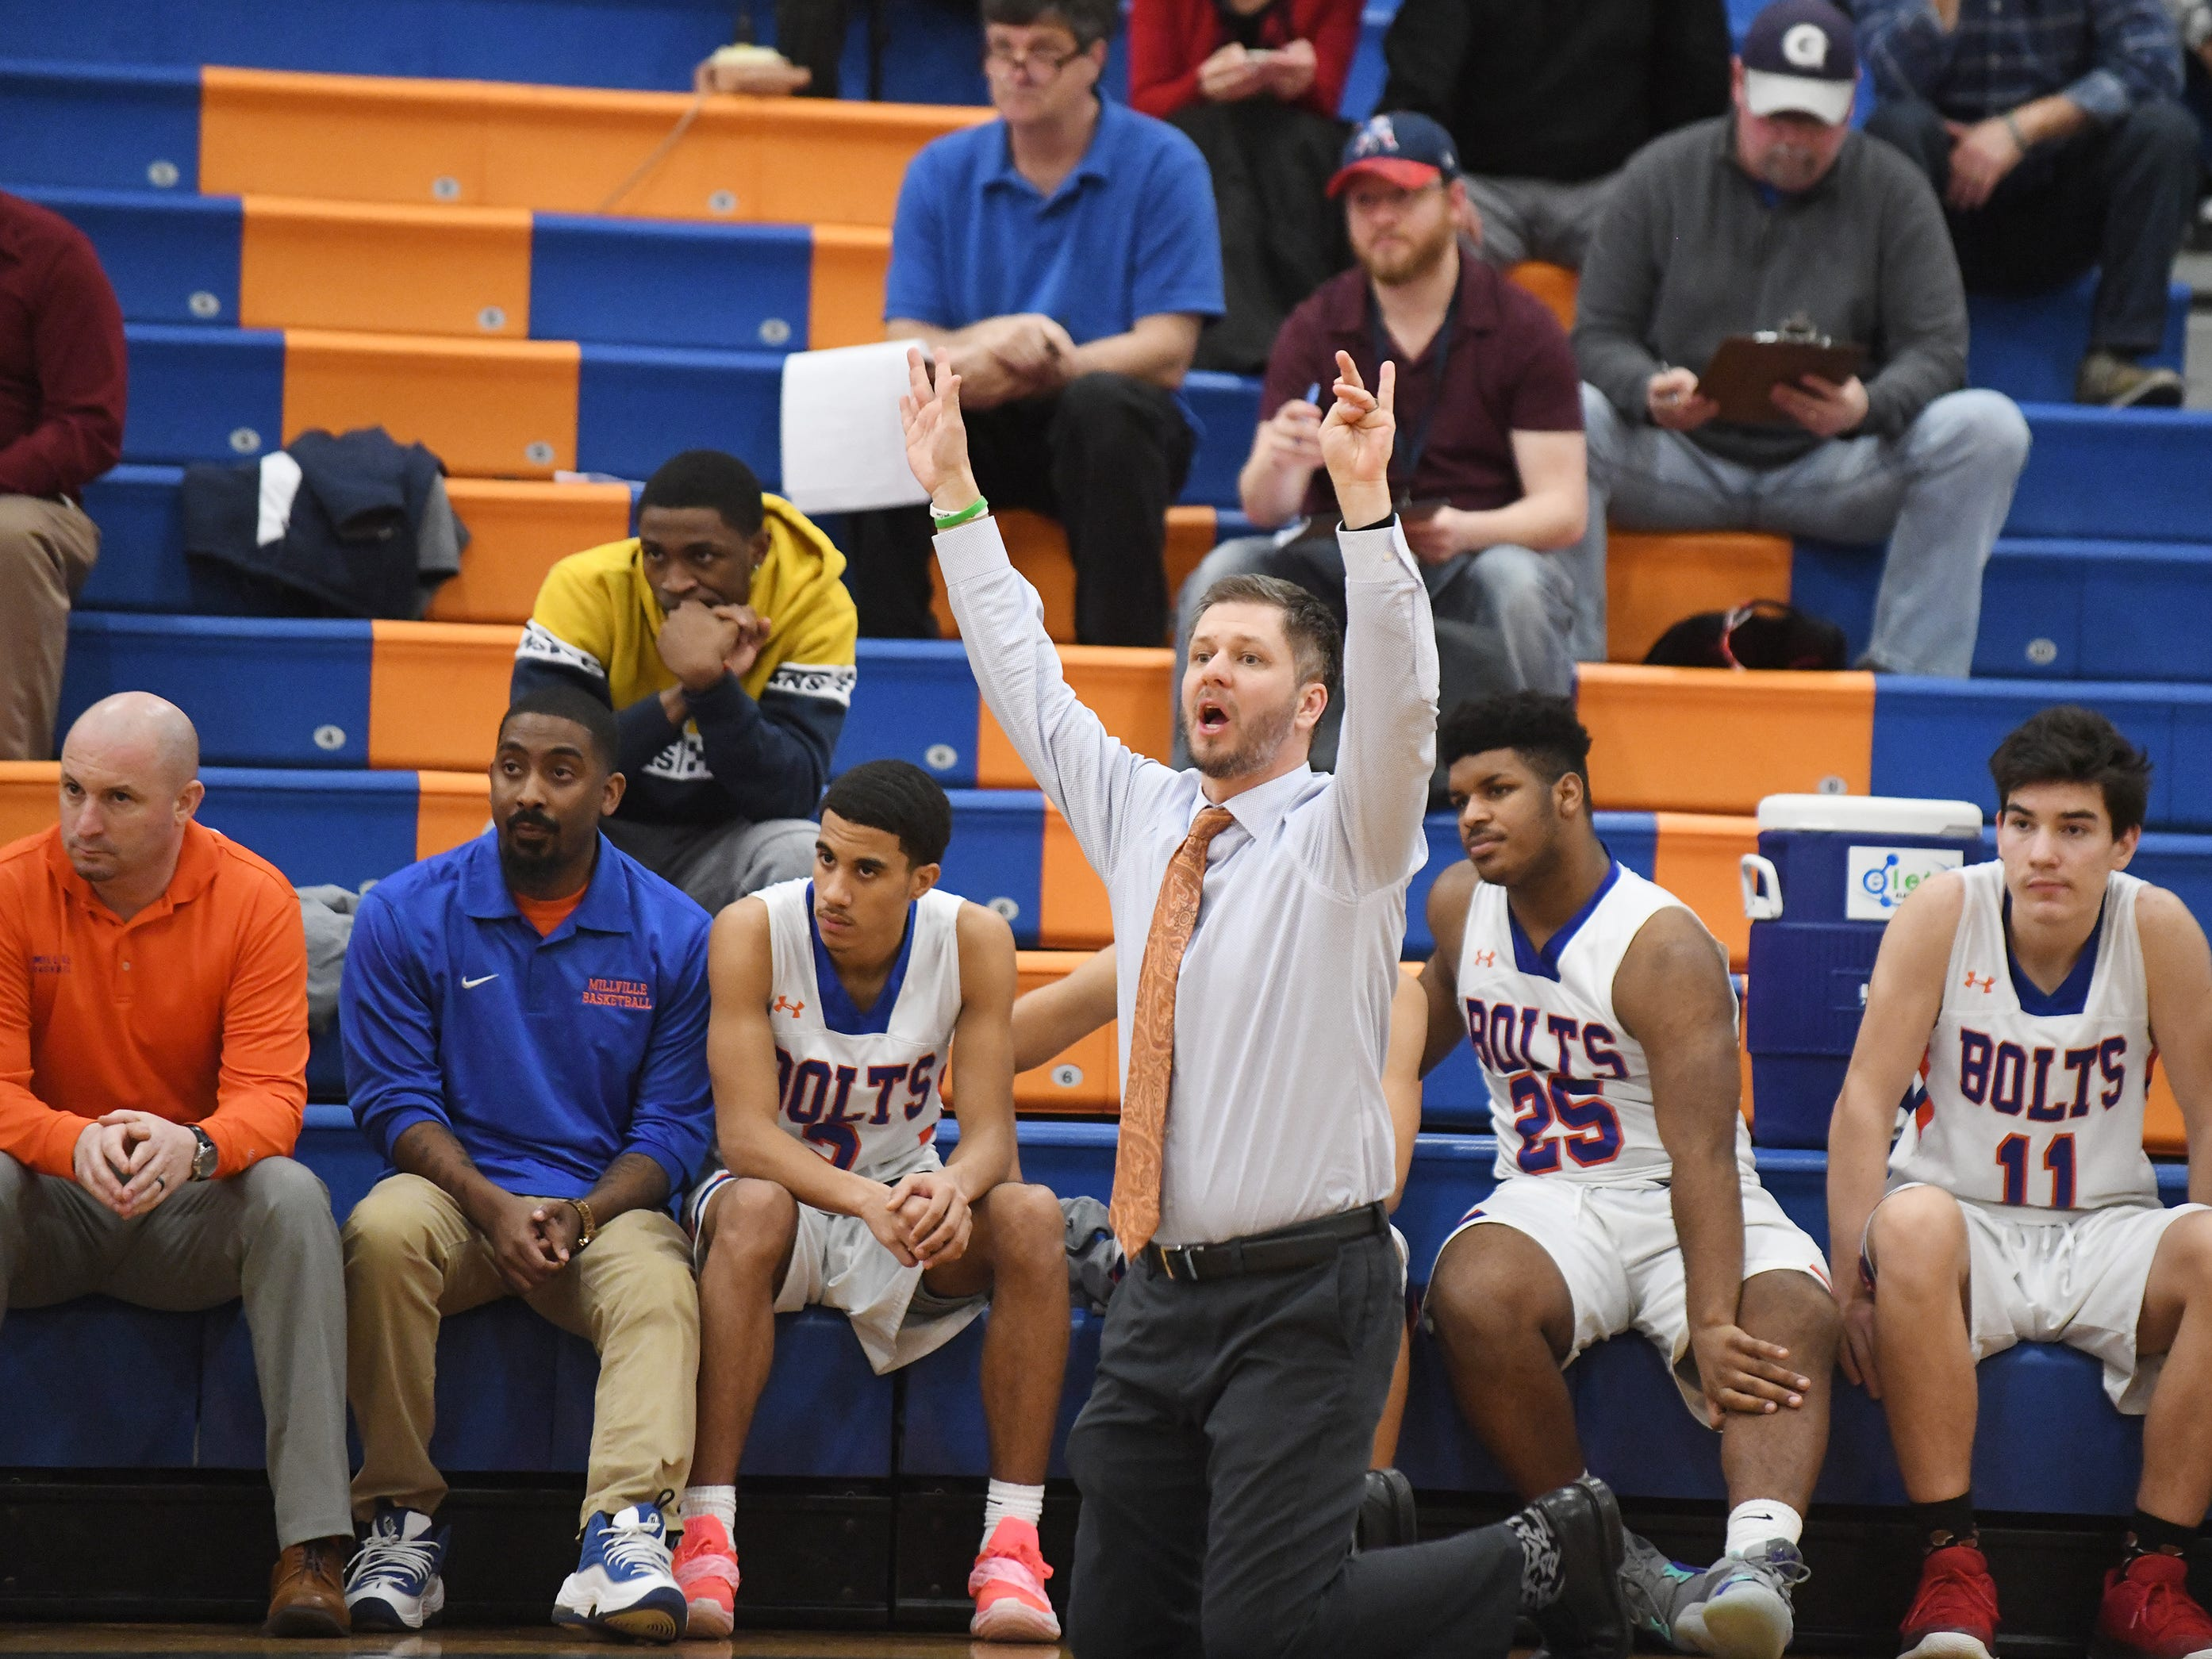 Millville coach Mike Jones reacts to a play during a game against St. Augustine. The Hermits topped the Thunderbolts 66-53 on Friday, Jan. 18, 2019.